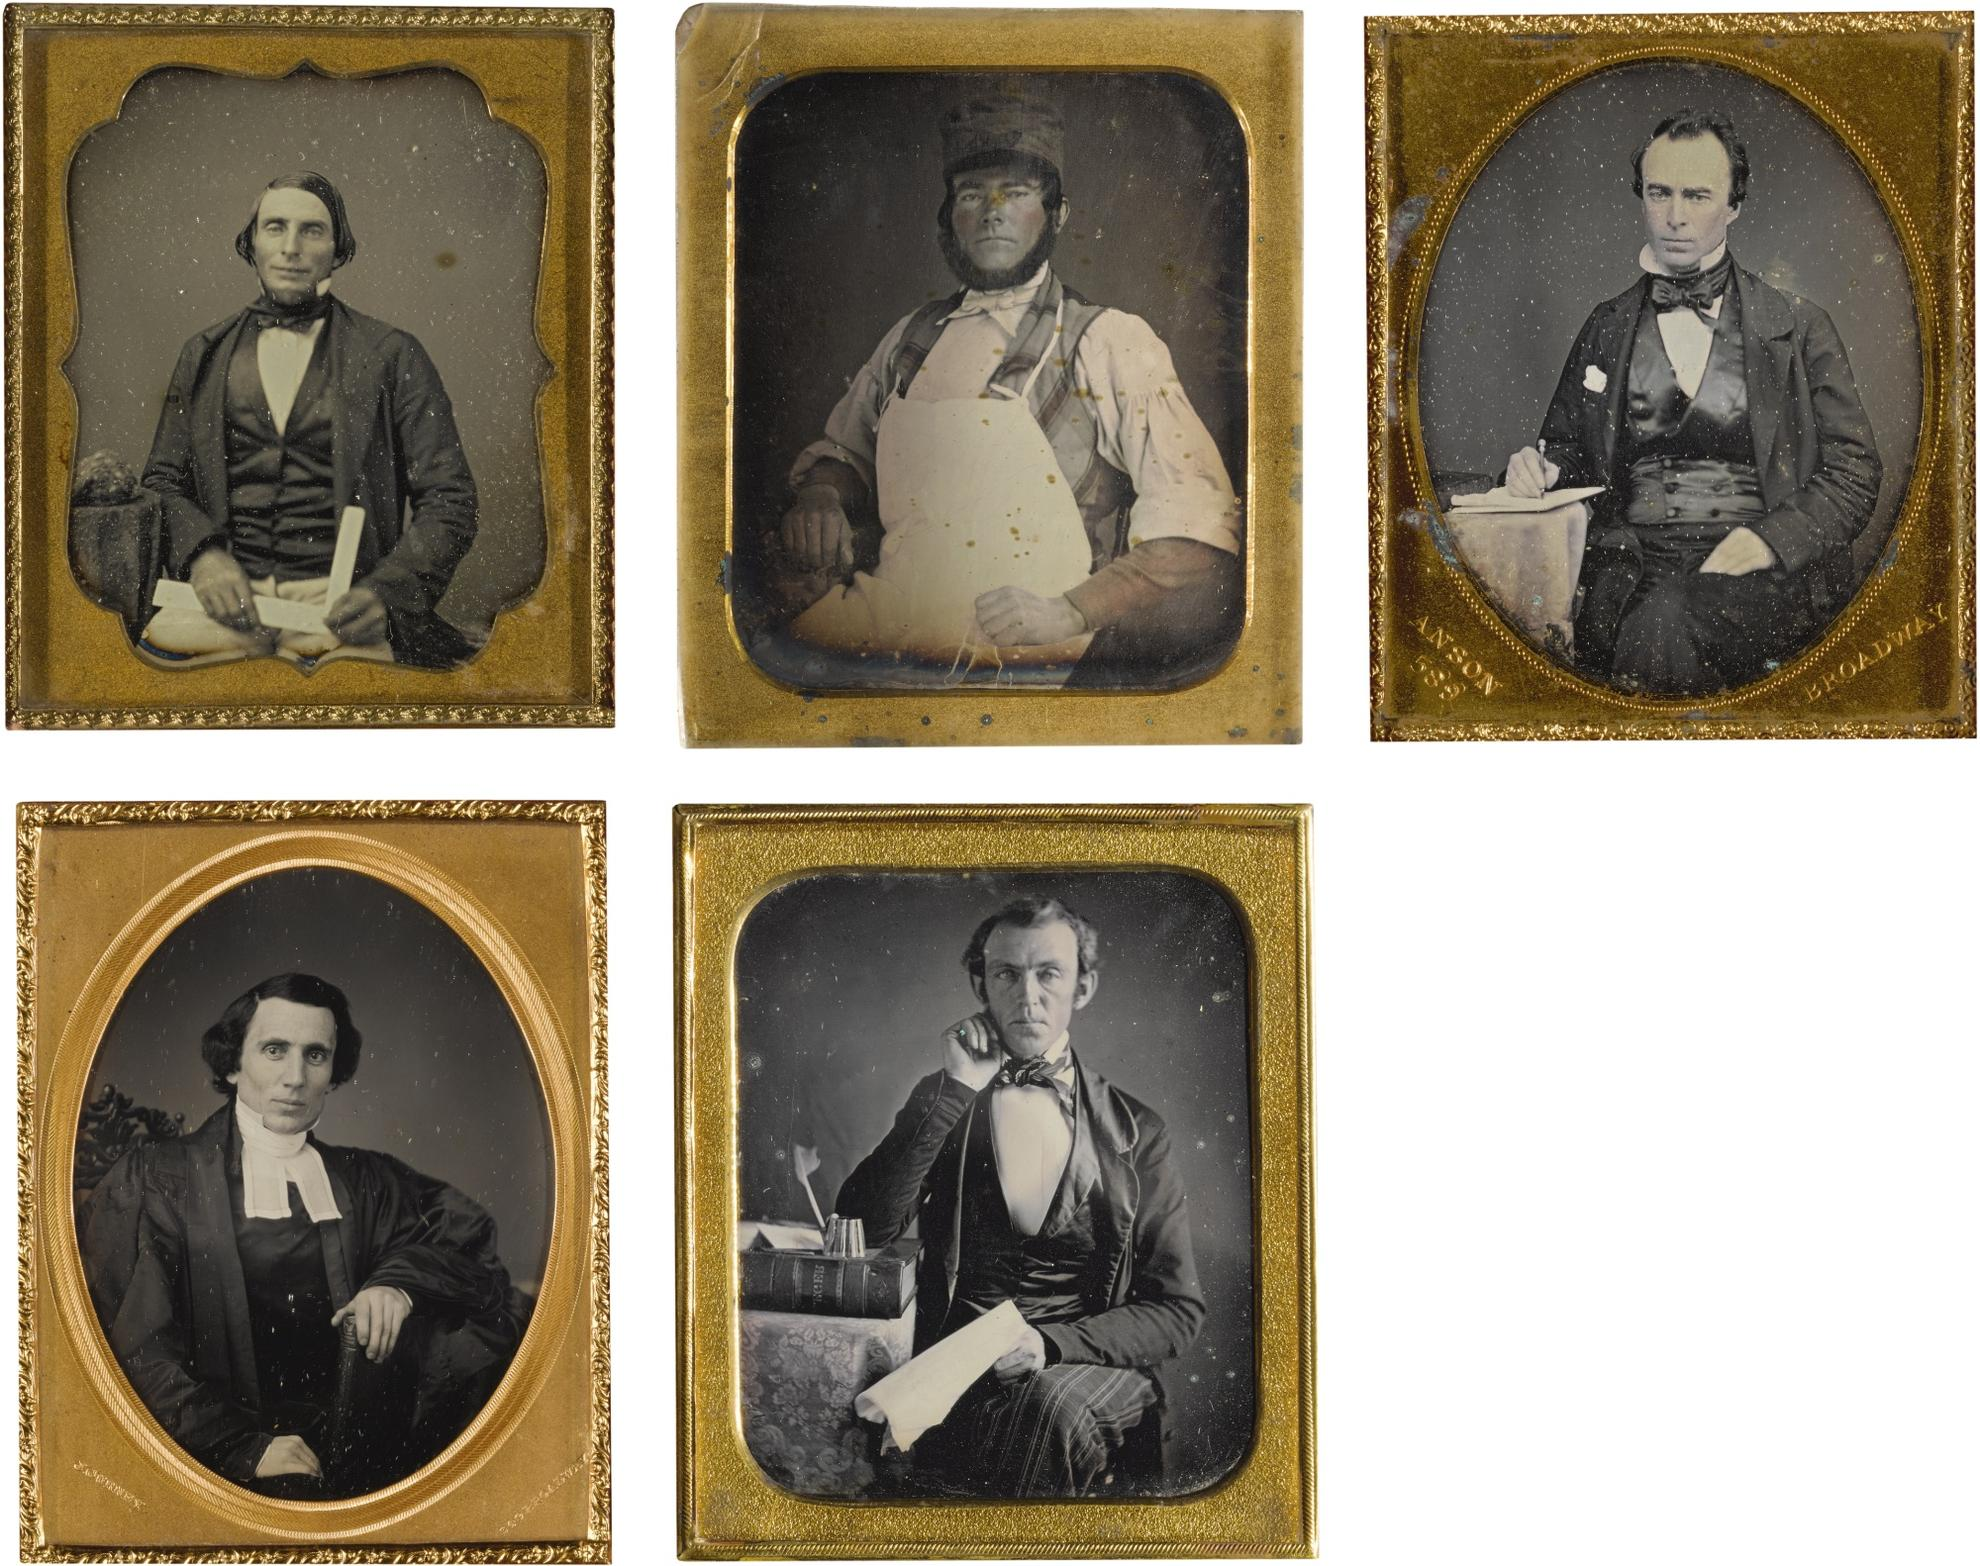 Rufus Anson-Rufus Anson And Anonymous American Photographer - Selected Occupational Portraits (comprising The Scribe by Rufus Anson; The Butcher by William Bell; The Judge by Jeremiah Gurney; The Carpenter by John T. Williams; and The Accountant with Ledger)-1850